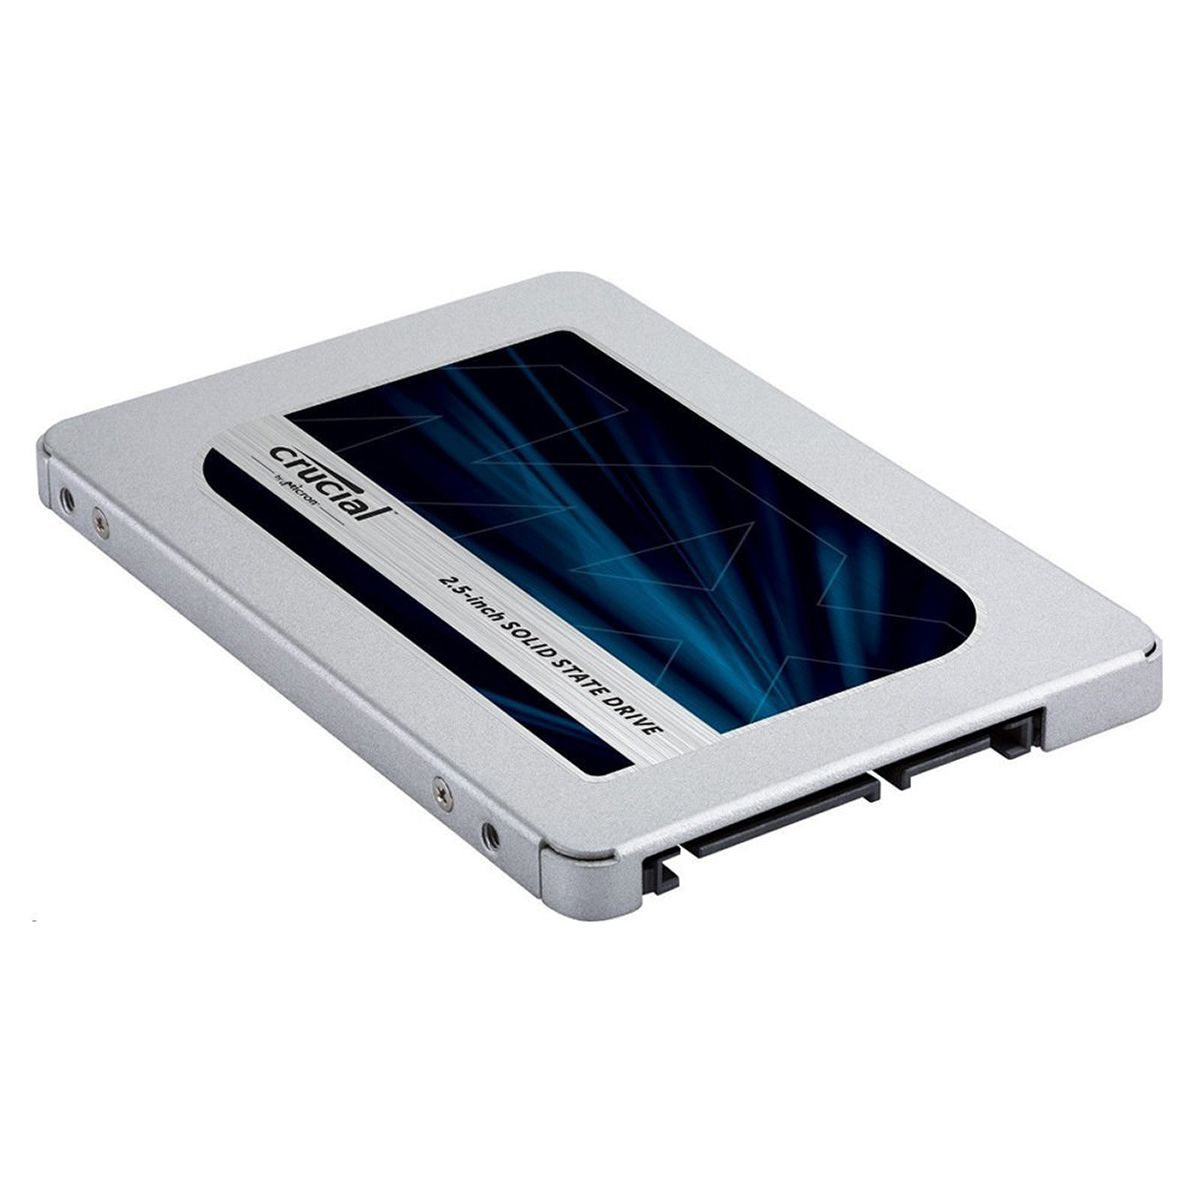 Disco Duro de estado solido 500 GB /2.5″ Crucial CT500MX500SSD1